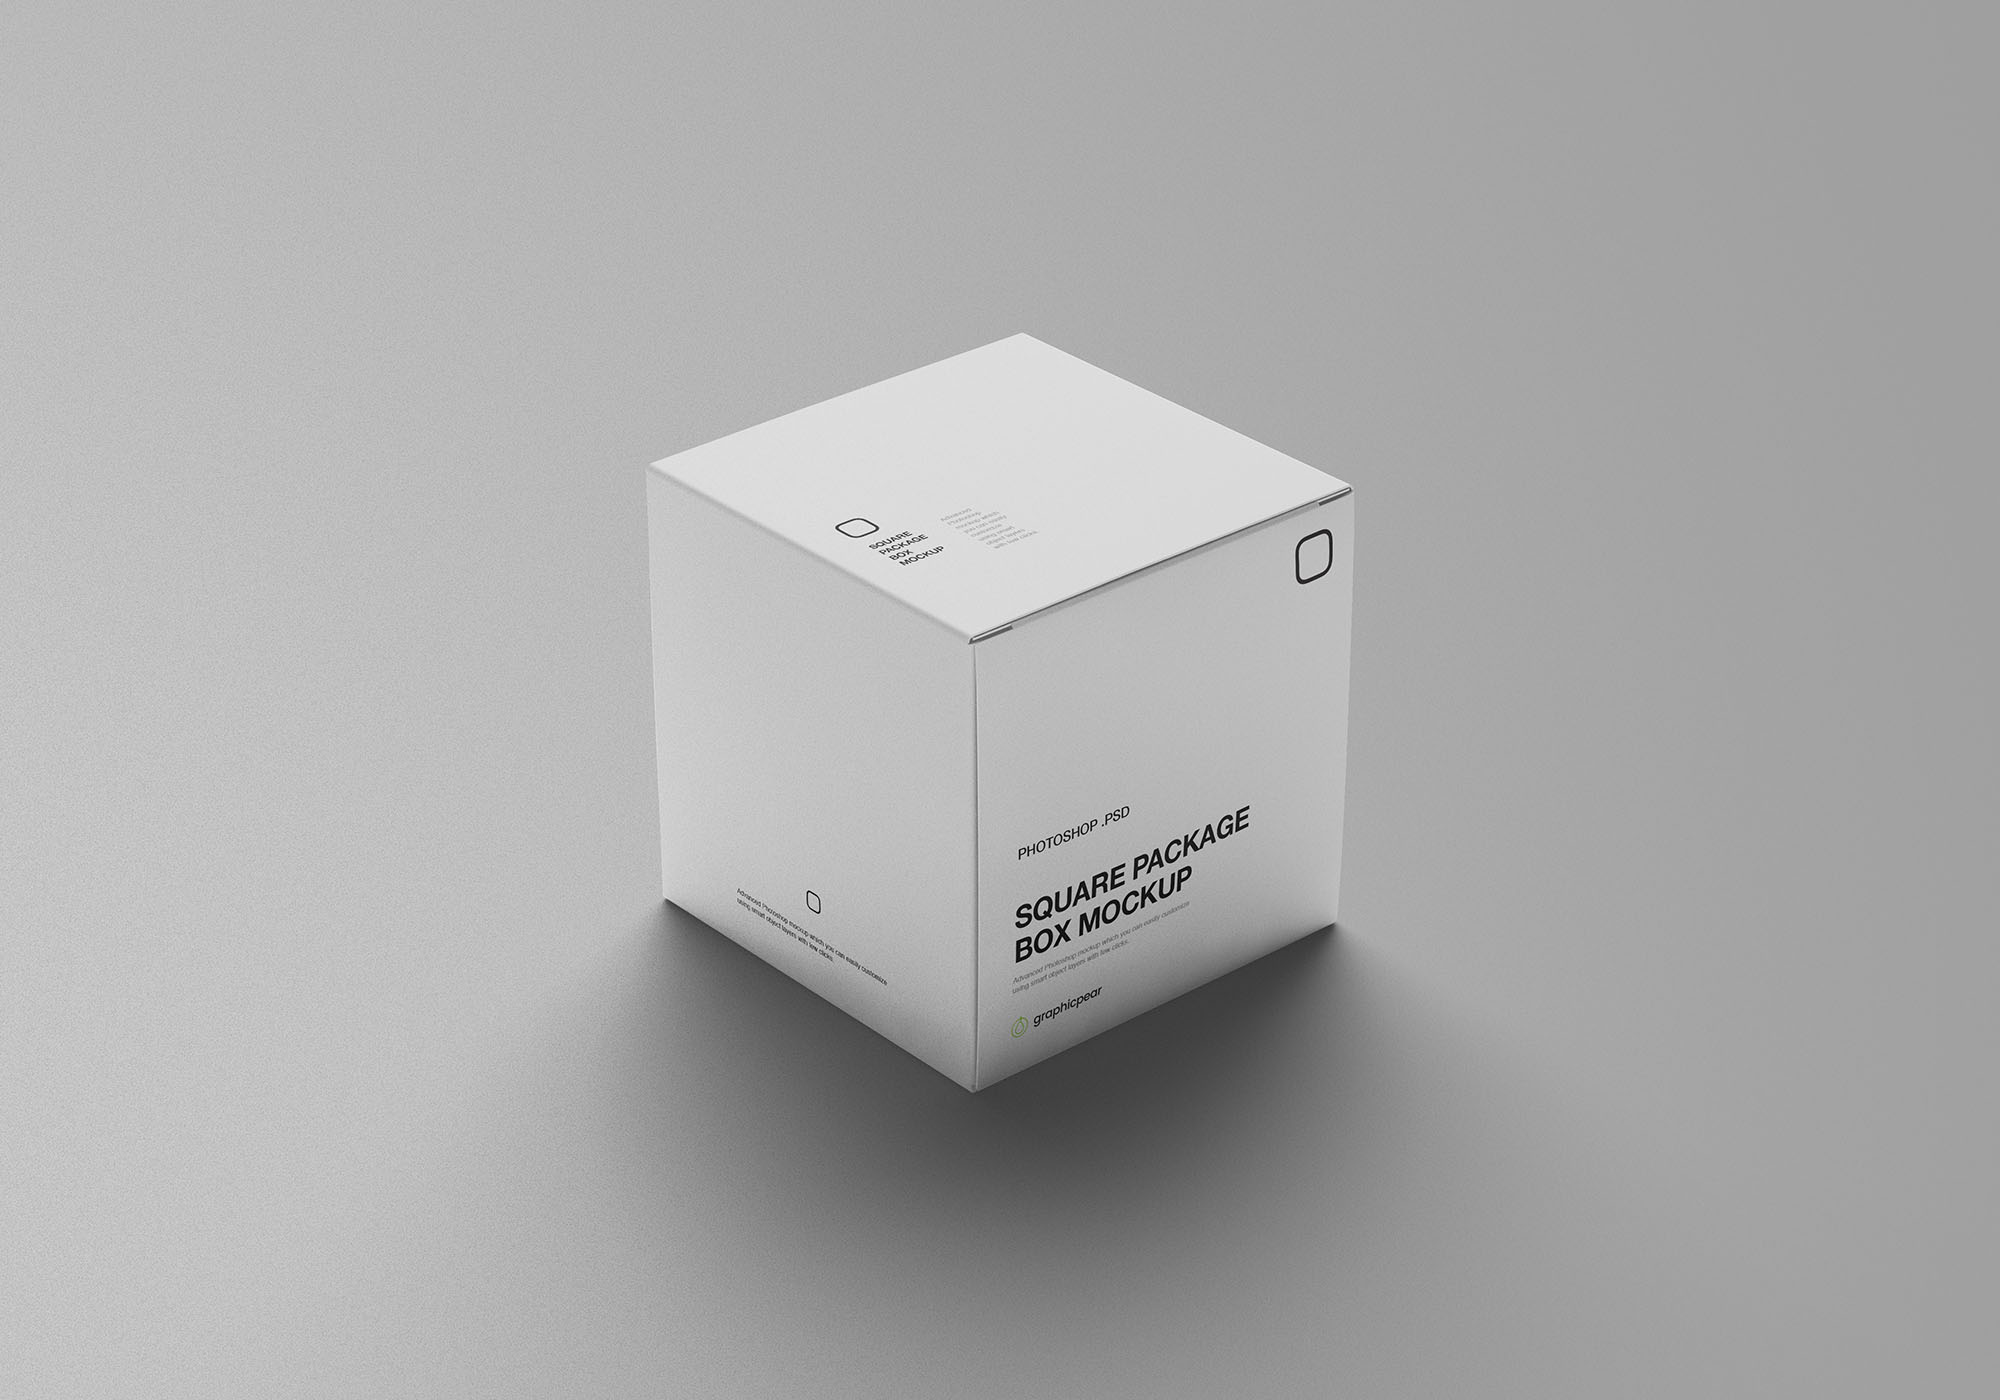 Square Package Box Mockup 5